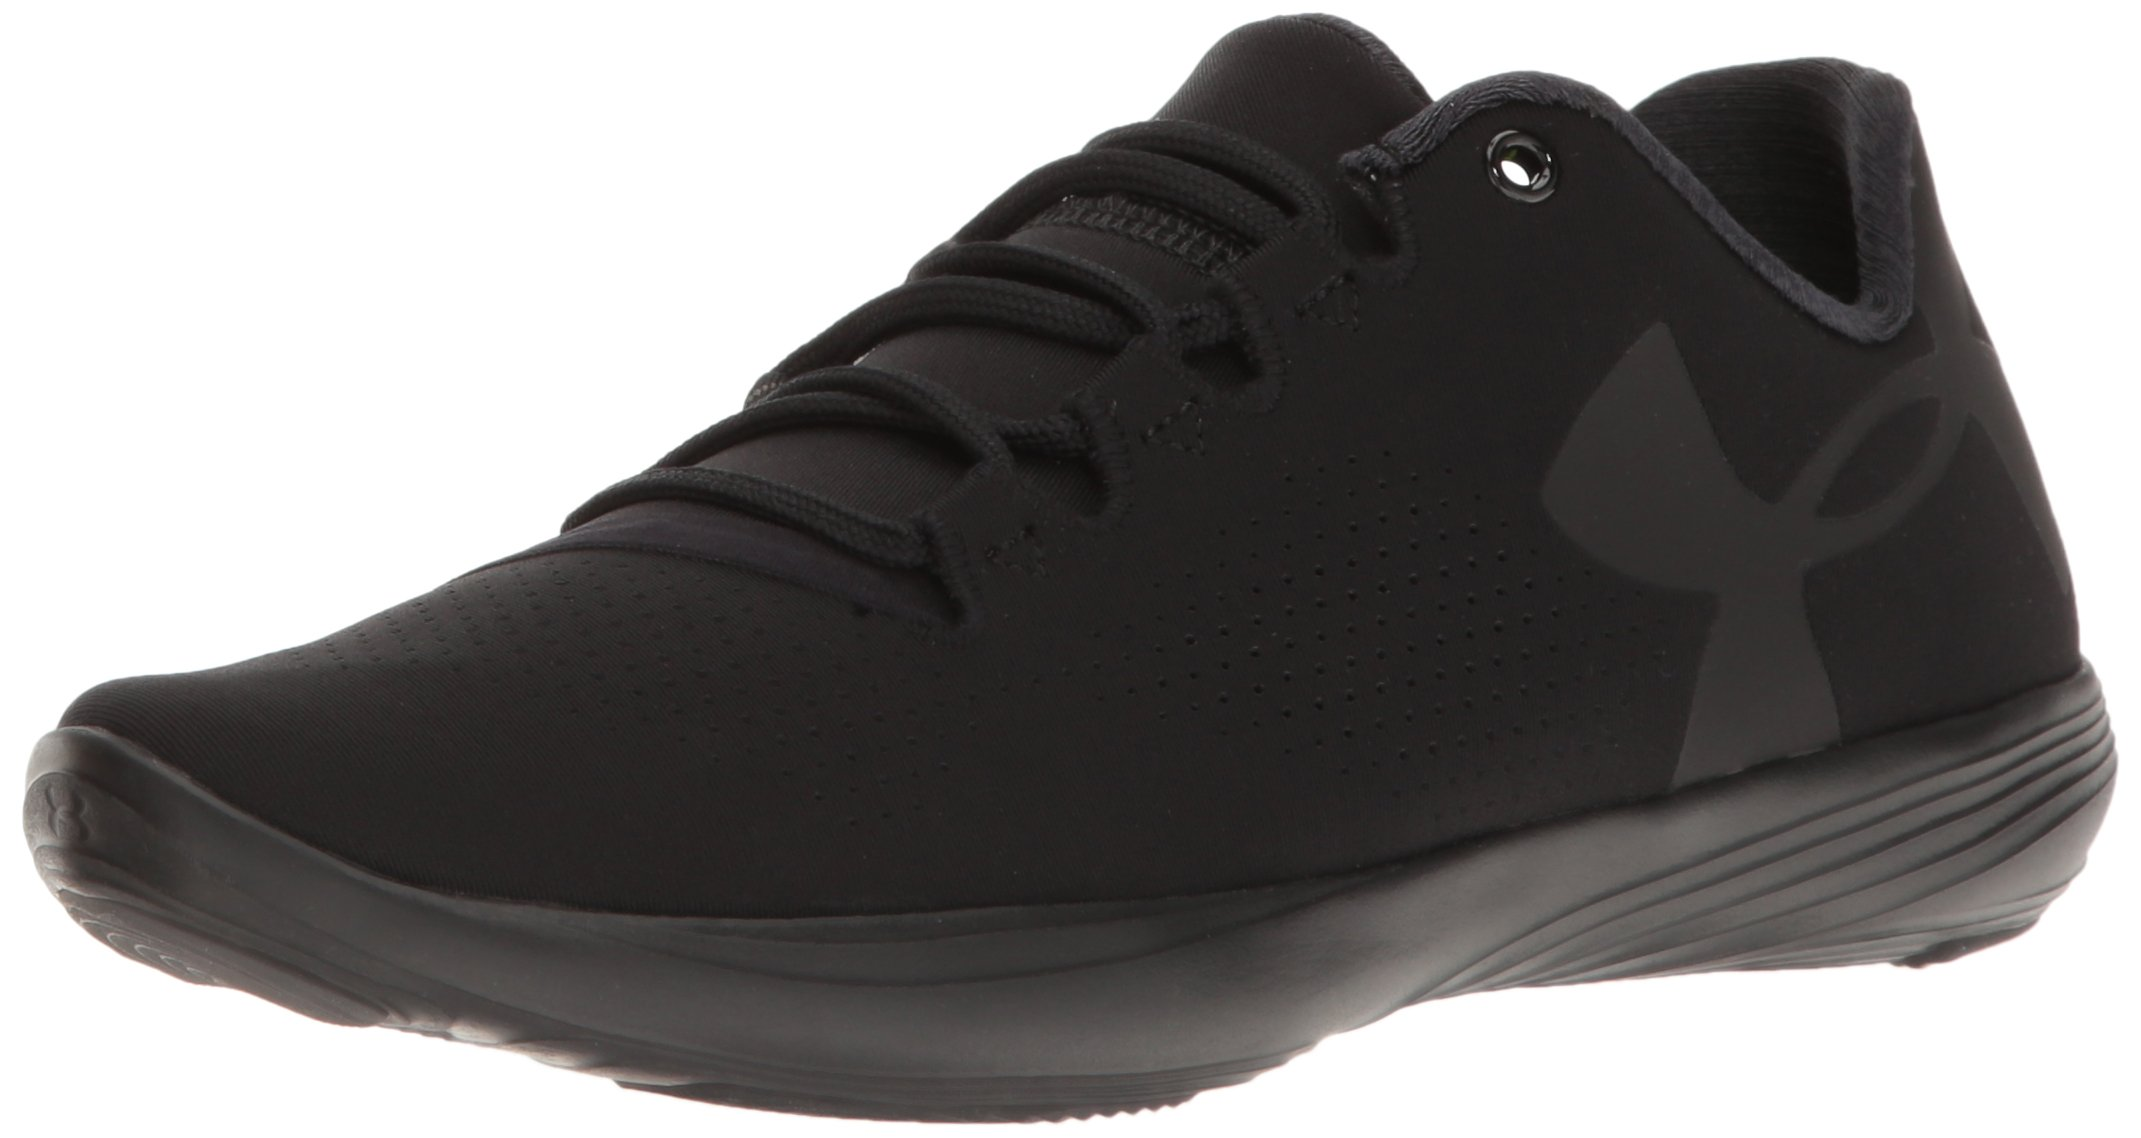 Under Armour Women's Street Precision Low, Black/Black/Black, 9.5 B(M) US by Under Armour